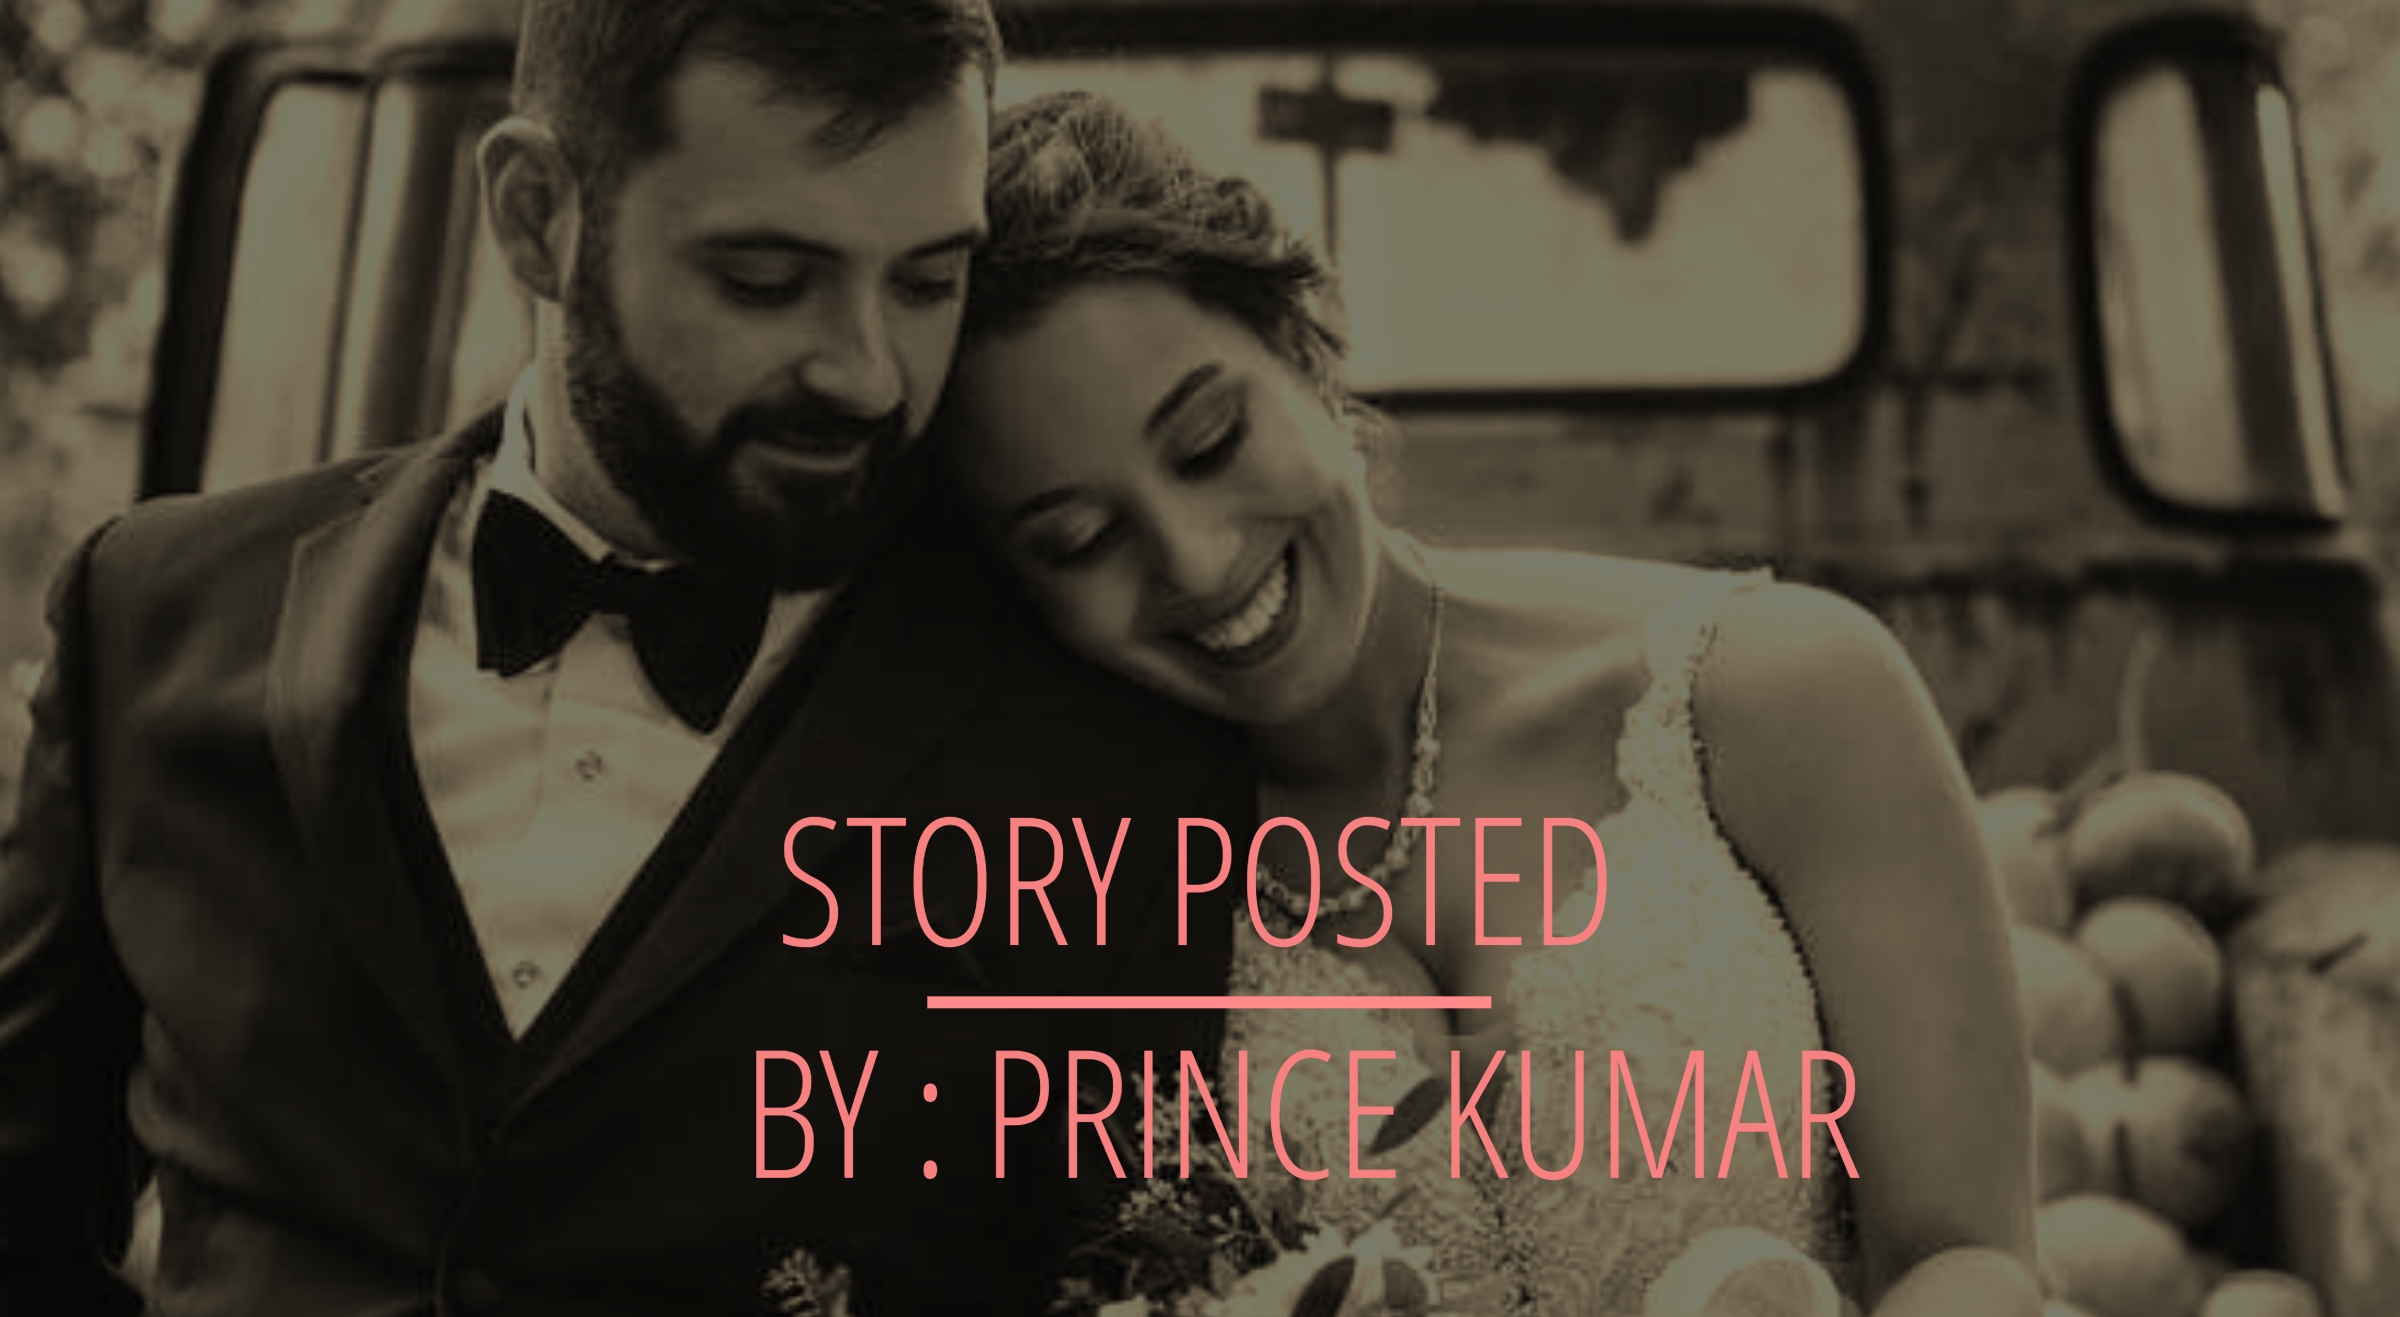 6. STORY POSTED BY PRINCE KUMAR